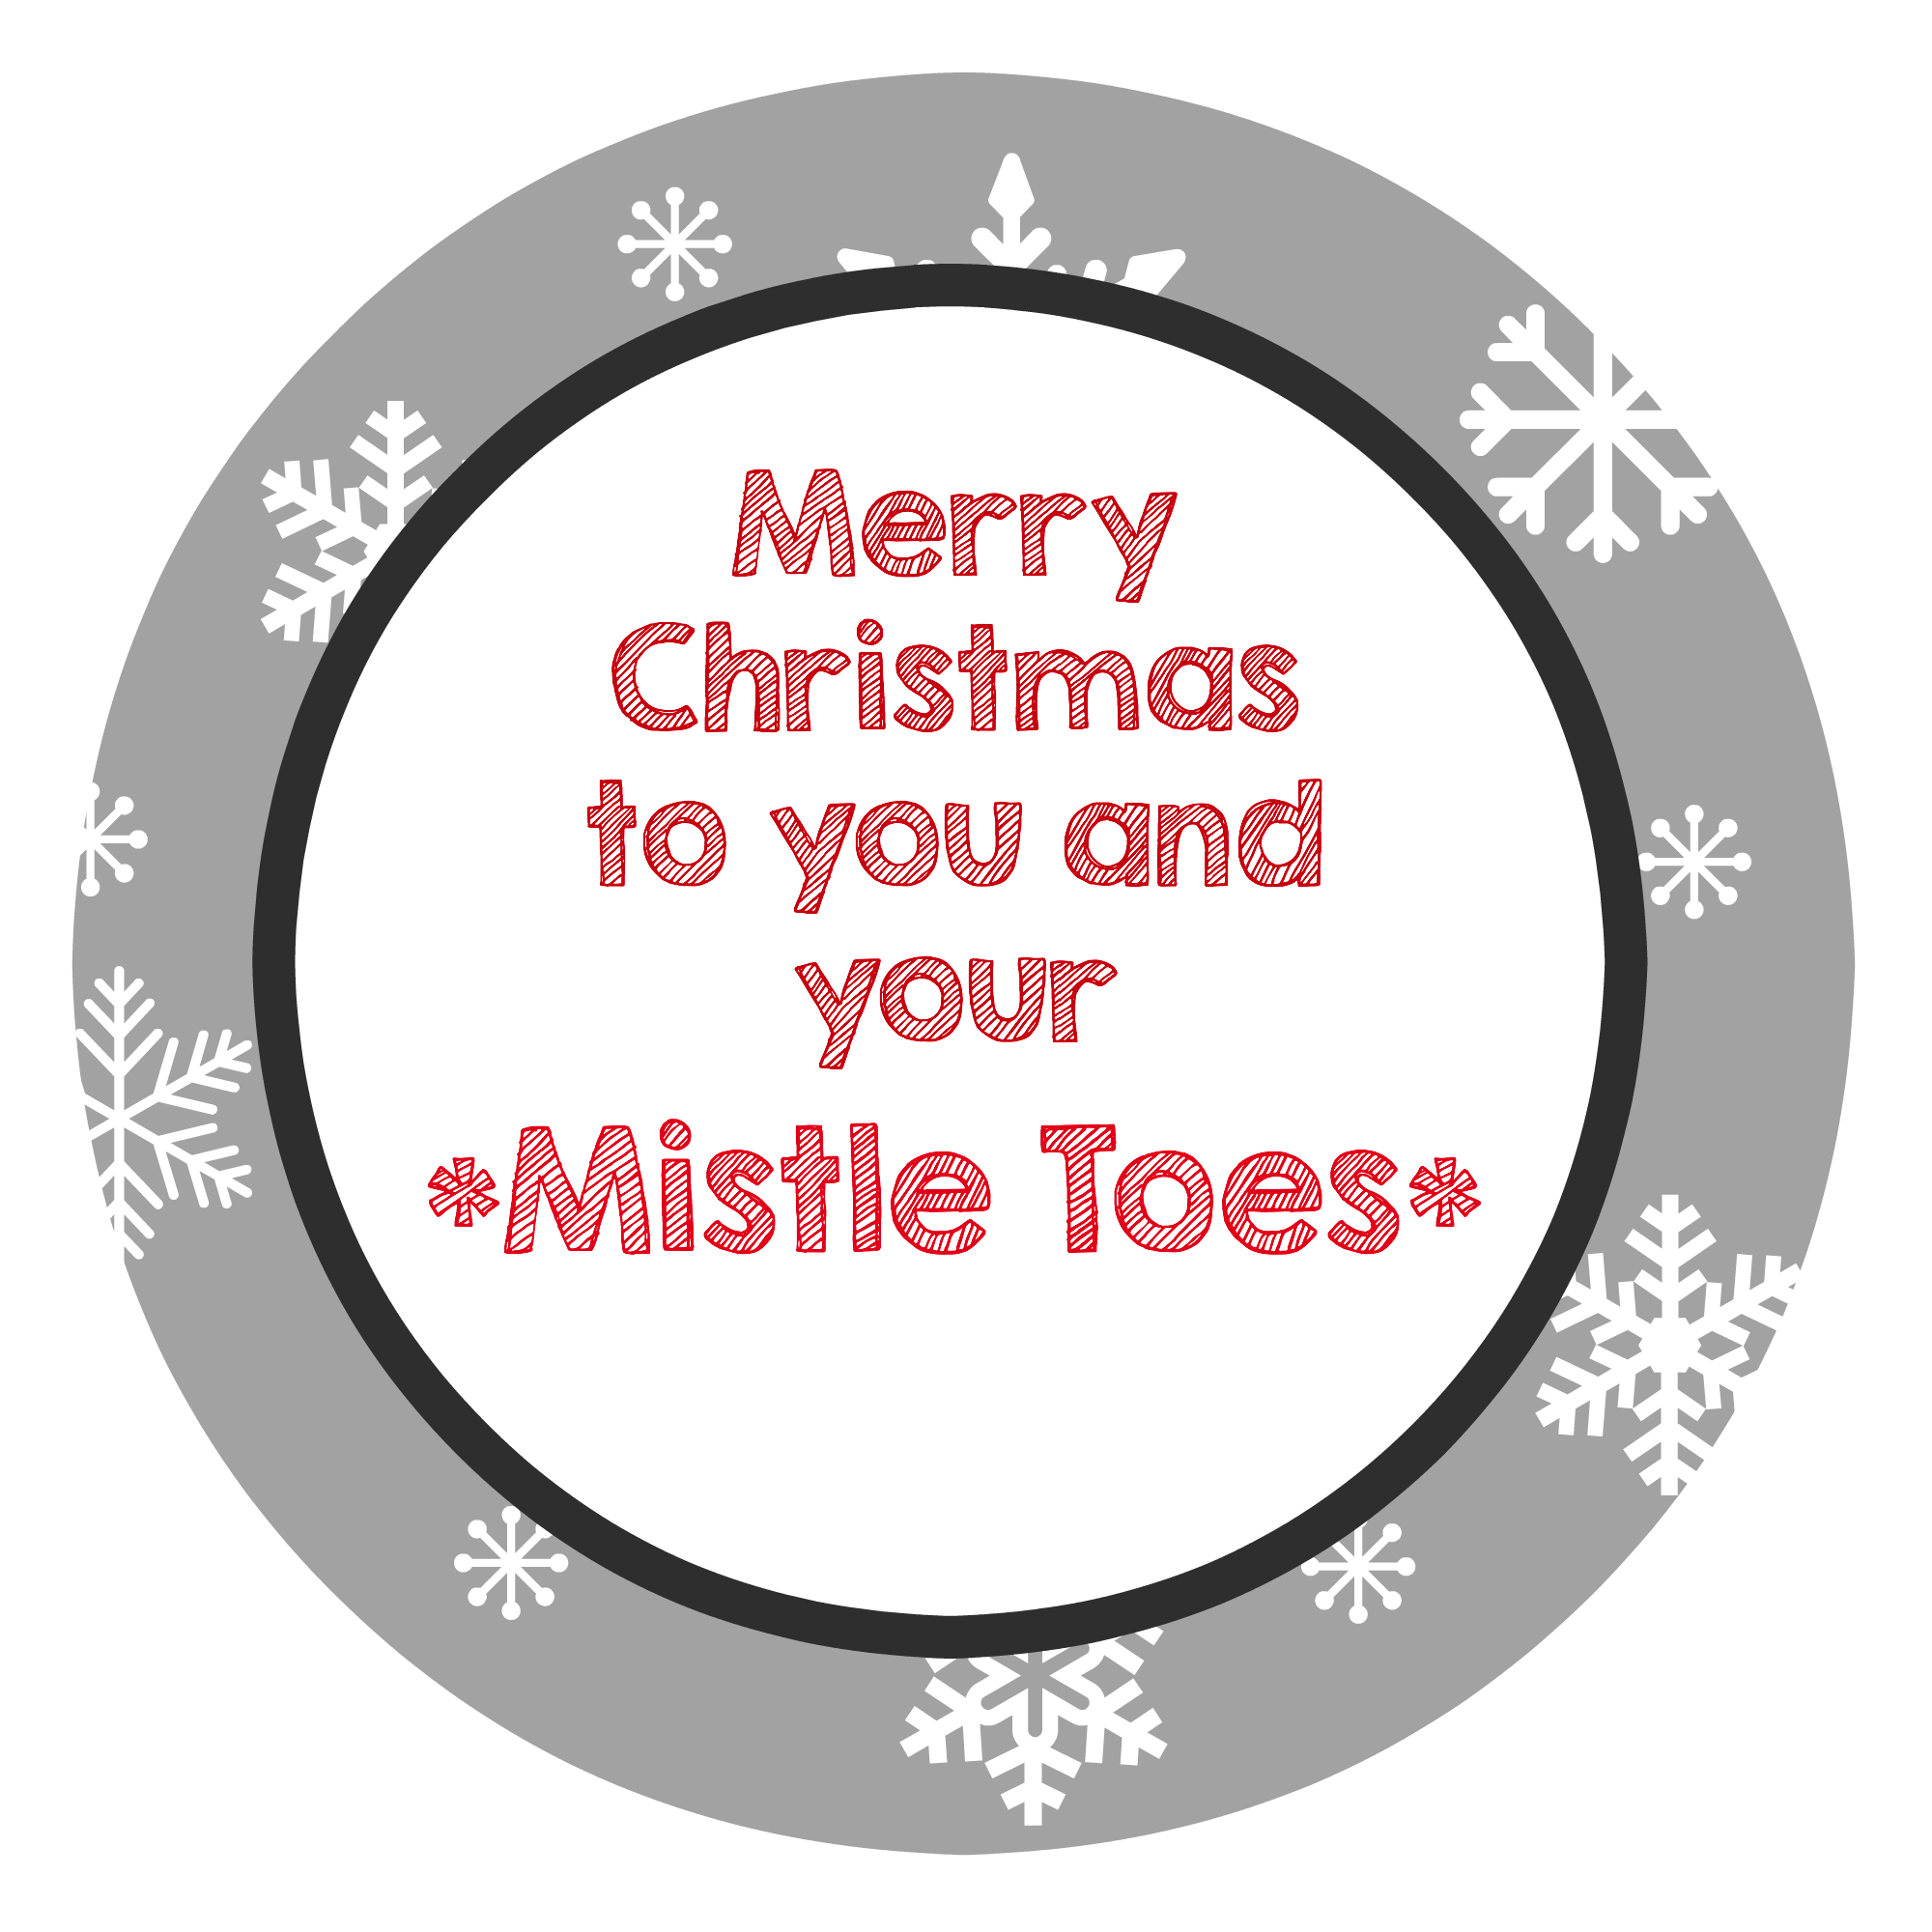 image about For Your Mistletoes Printable called 3 Simple Xmas Reward Recommendations for Buddies - Outrageous Very little Jobs